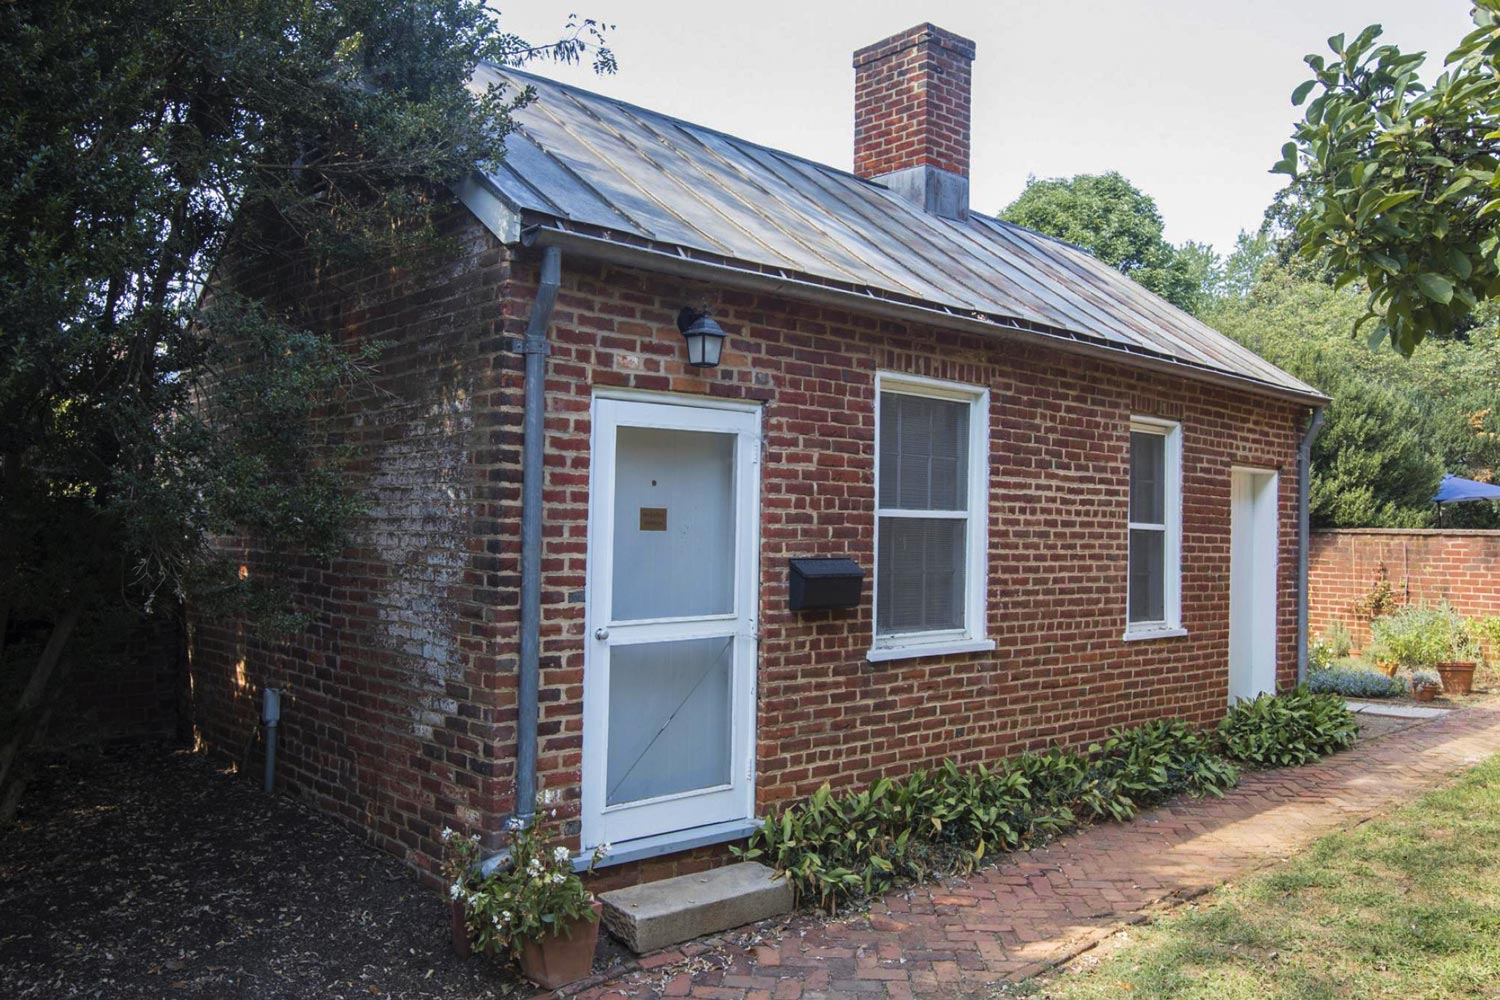 McGuffey Cottage, located to the west and back of Pavilion IX, originally housed enslaved workers.